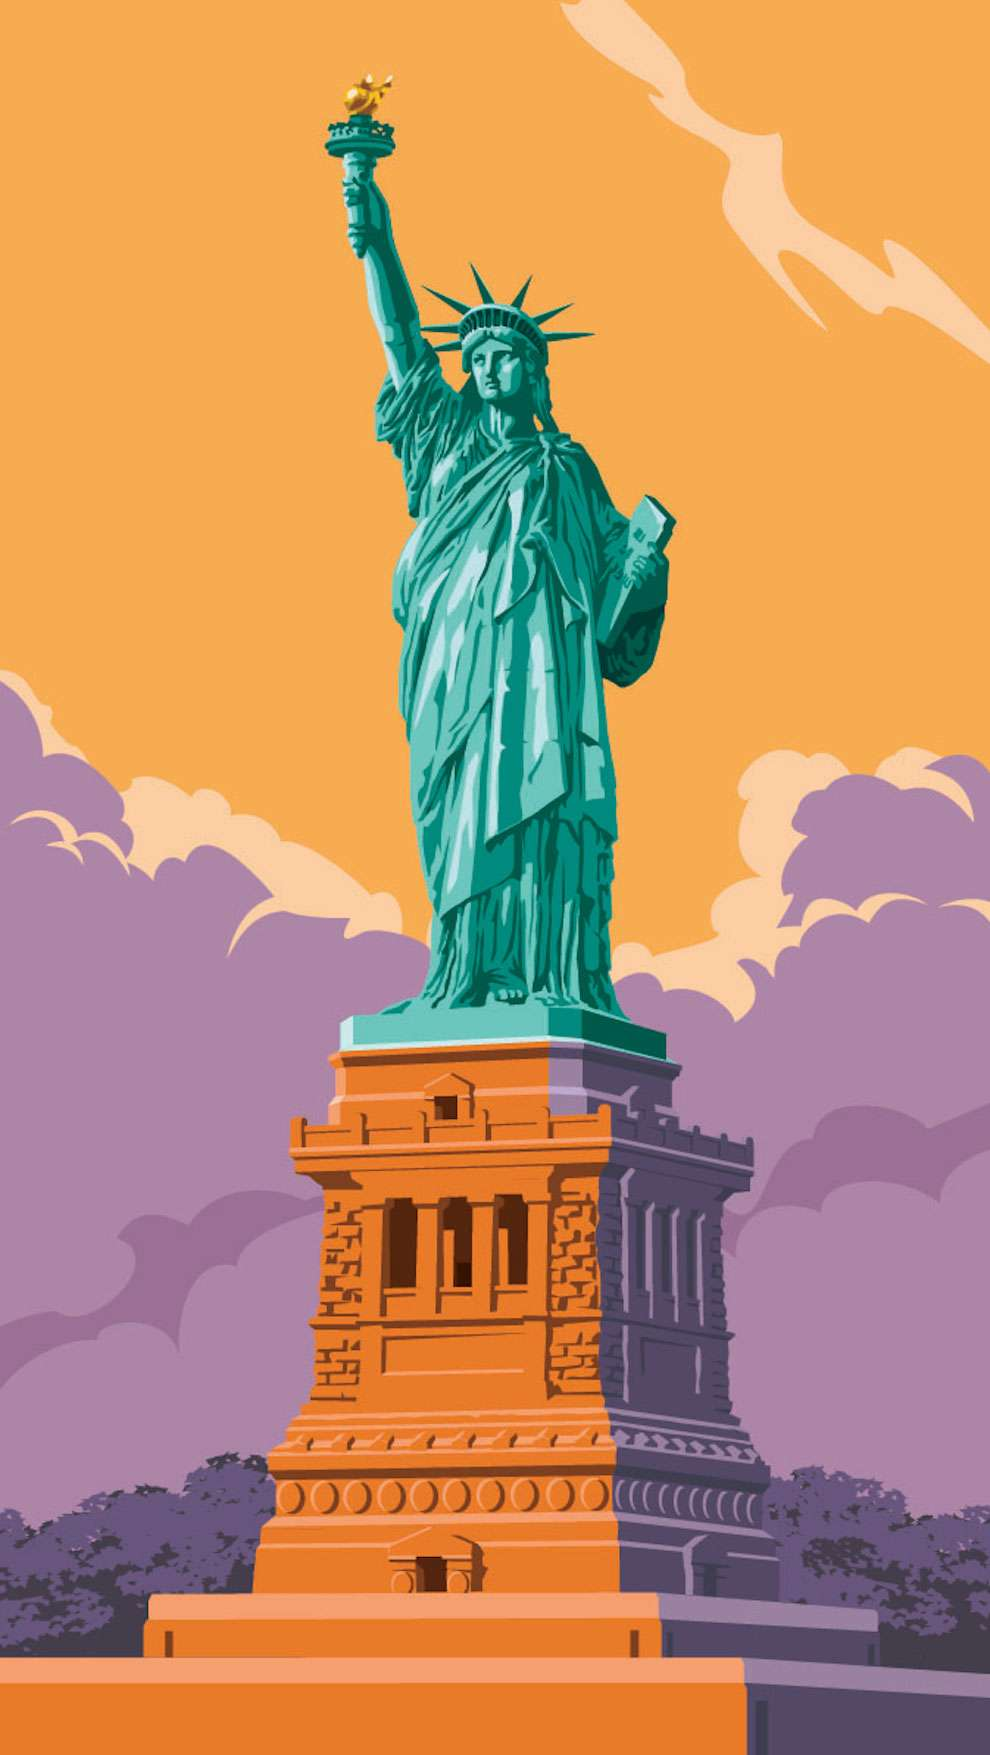 Stephen  Millership, Bold and graphic illustration of the statue of liberty